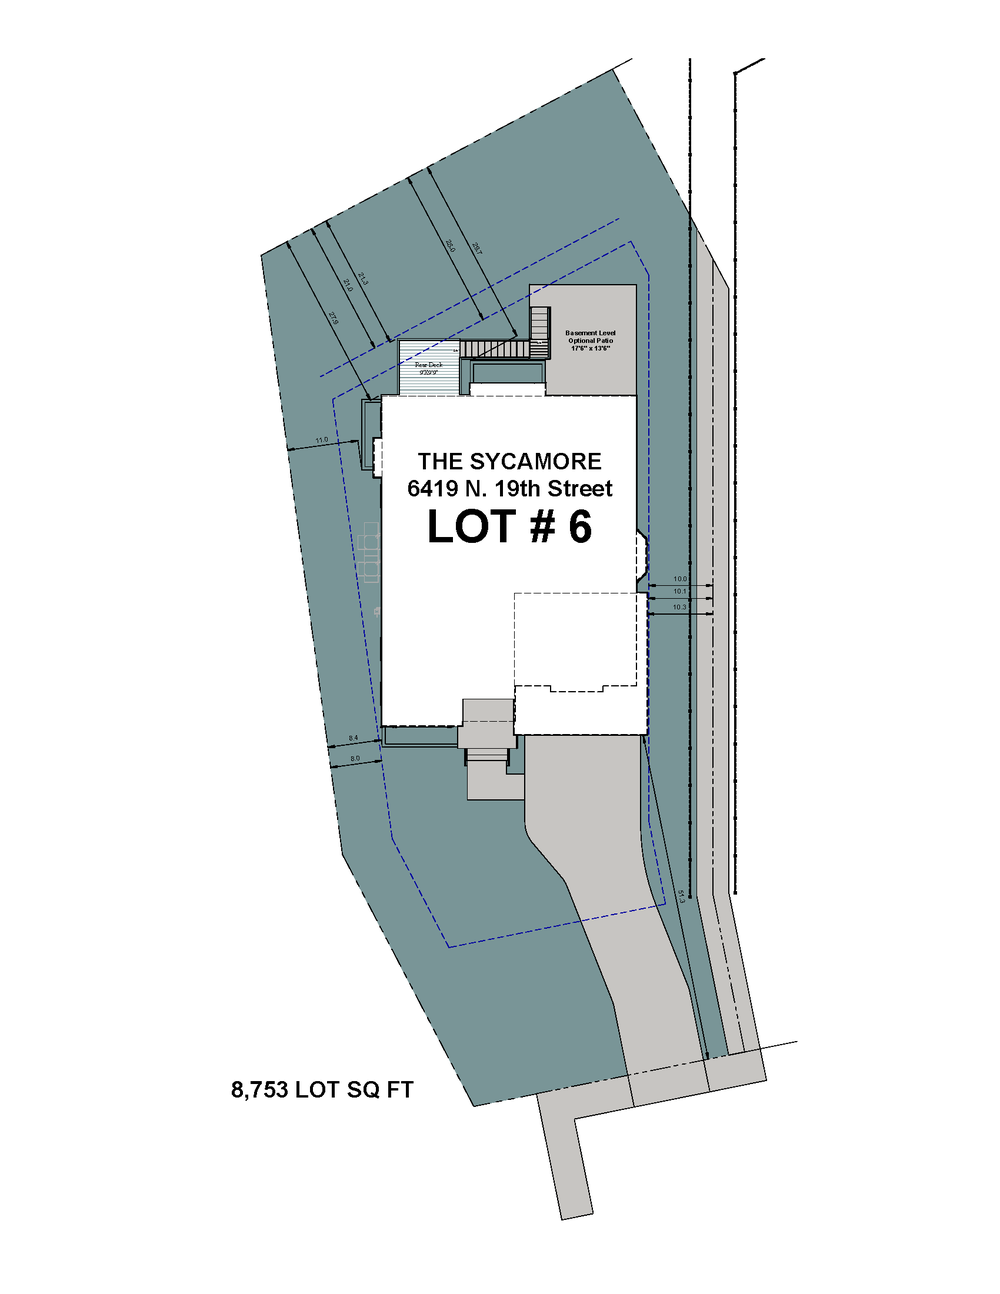 Lot 6 Site Plan-6419 N 19th Street-The Sycamore Model.png